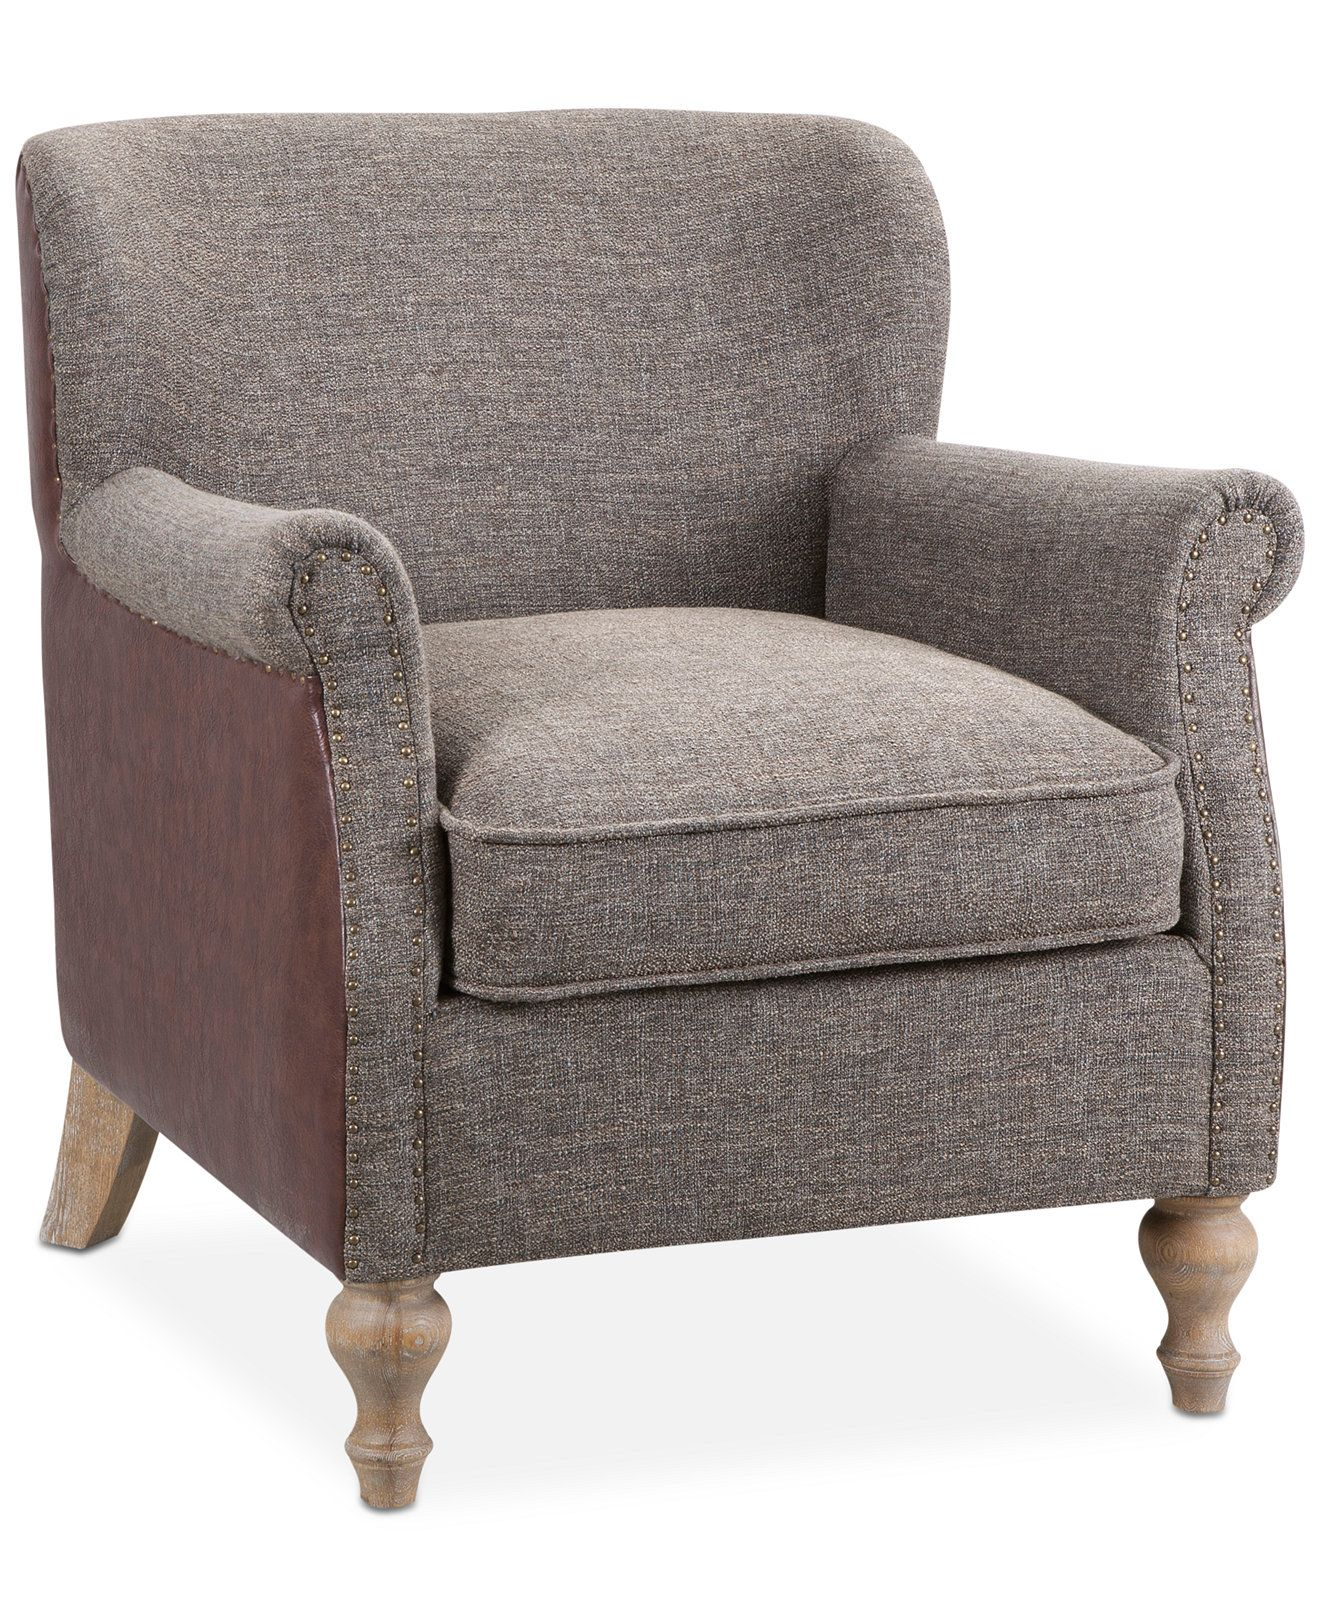 Leather Accent Chairs For Living Room Victorian Sets Chelsie Fabric Faux Chair Direct Ship Recliners Furniture Macy S